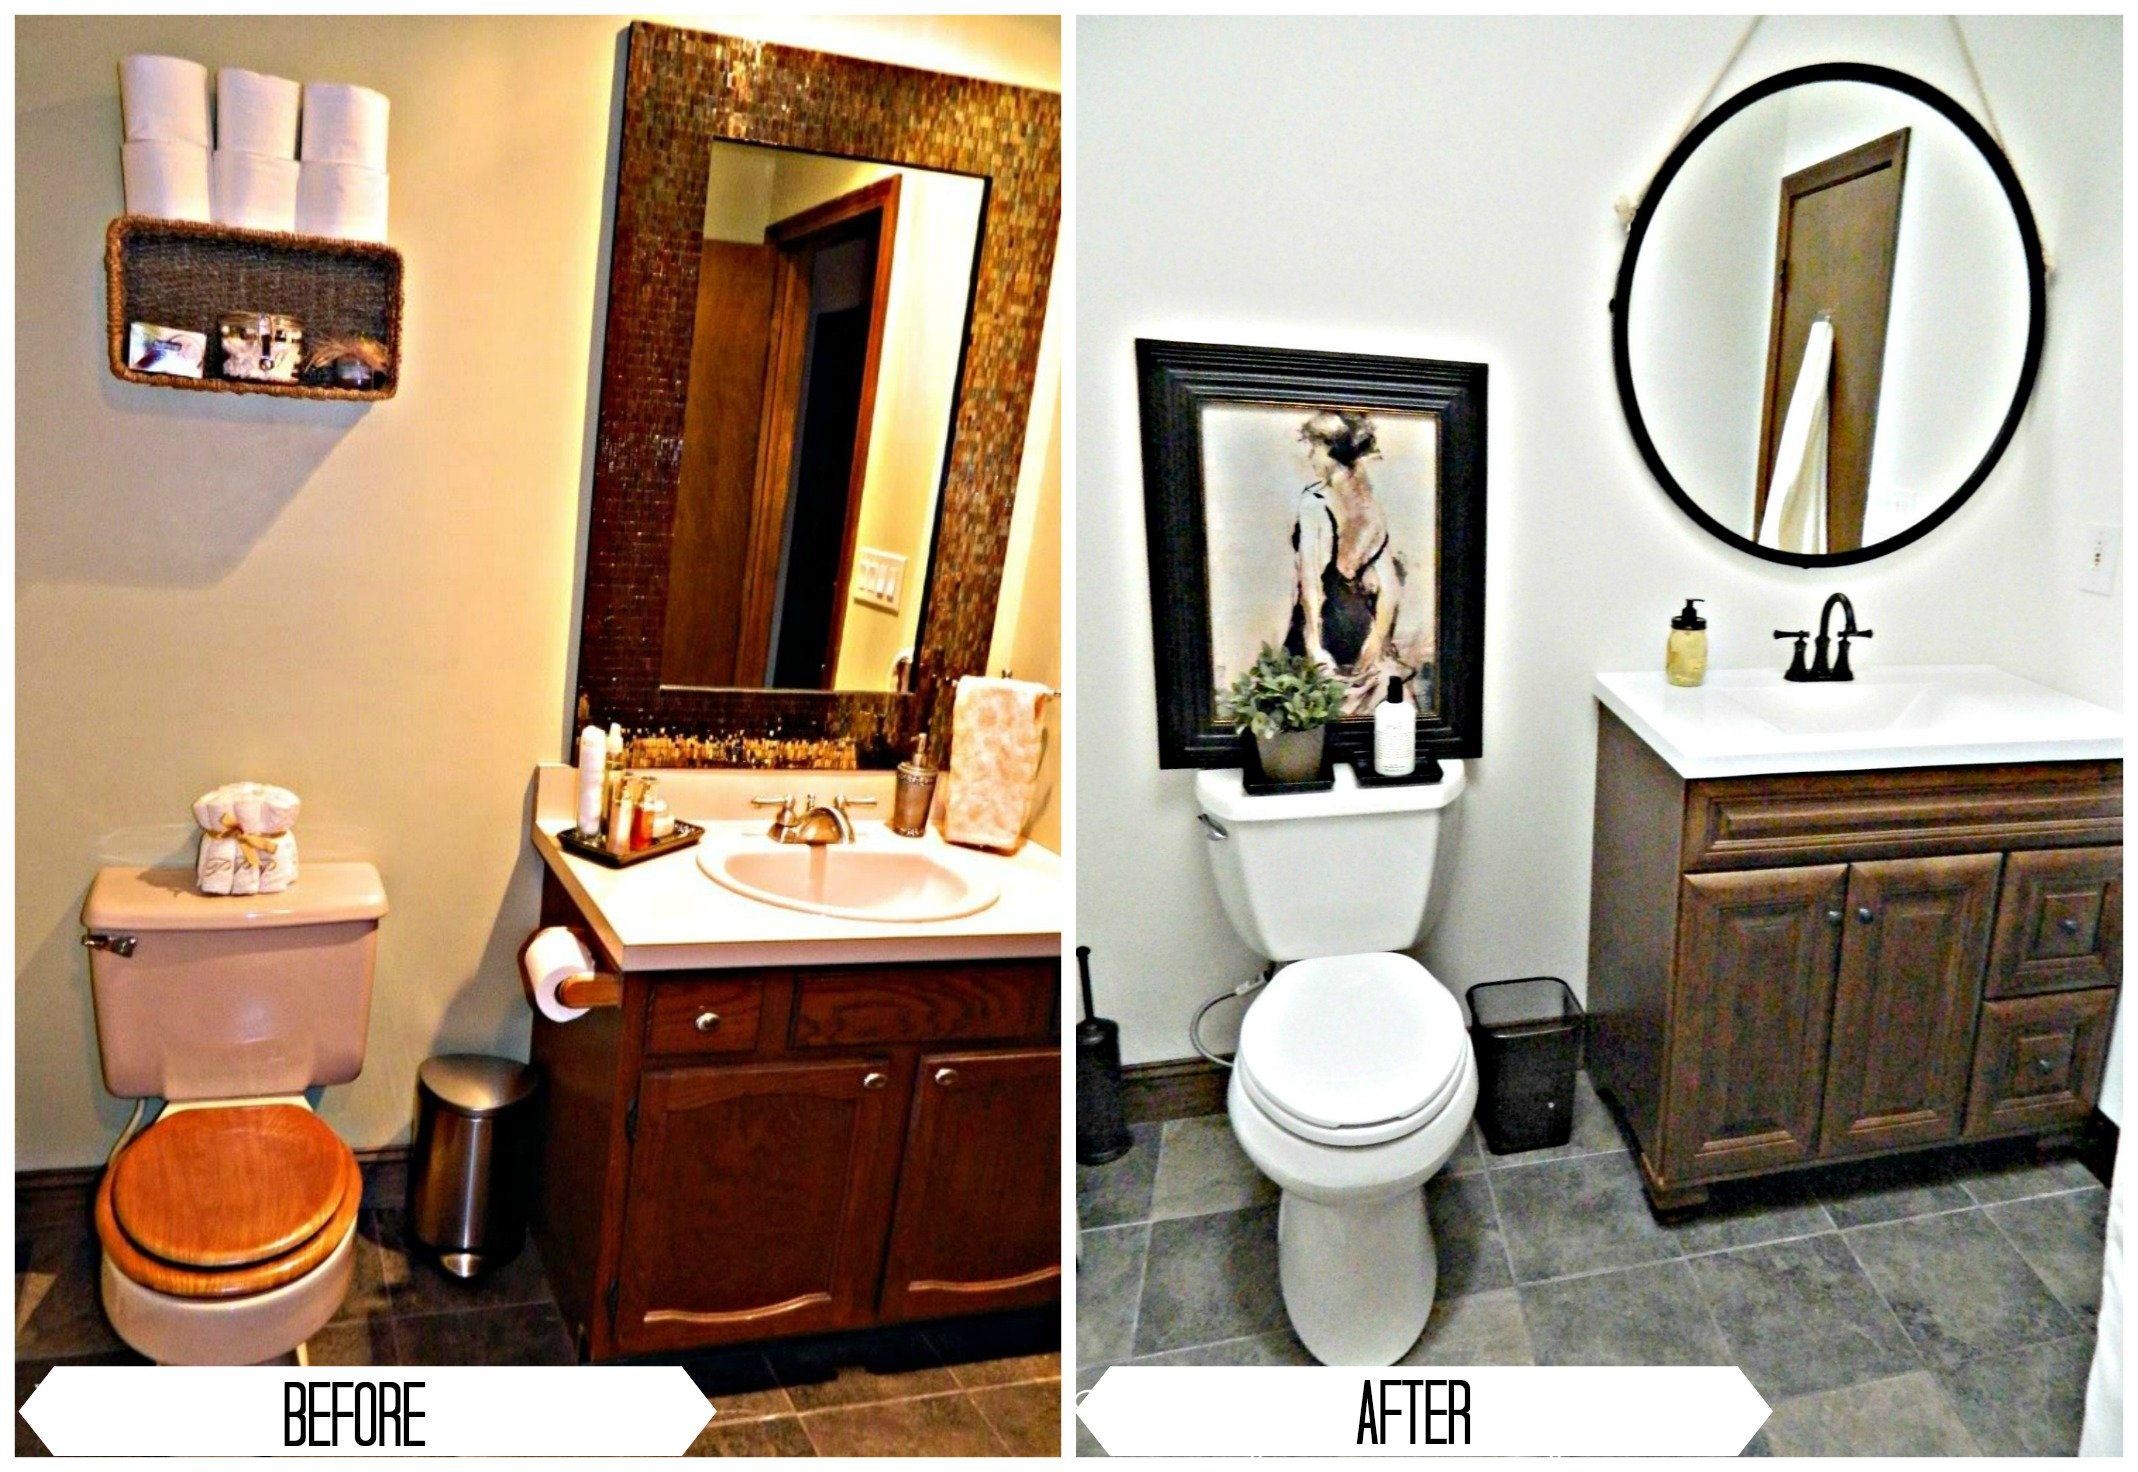 Bathroom Renovation Ideas Before And After bathroom renovation under $1,000 | finding silver linings